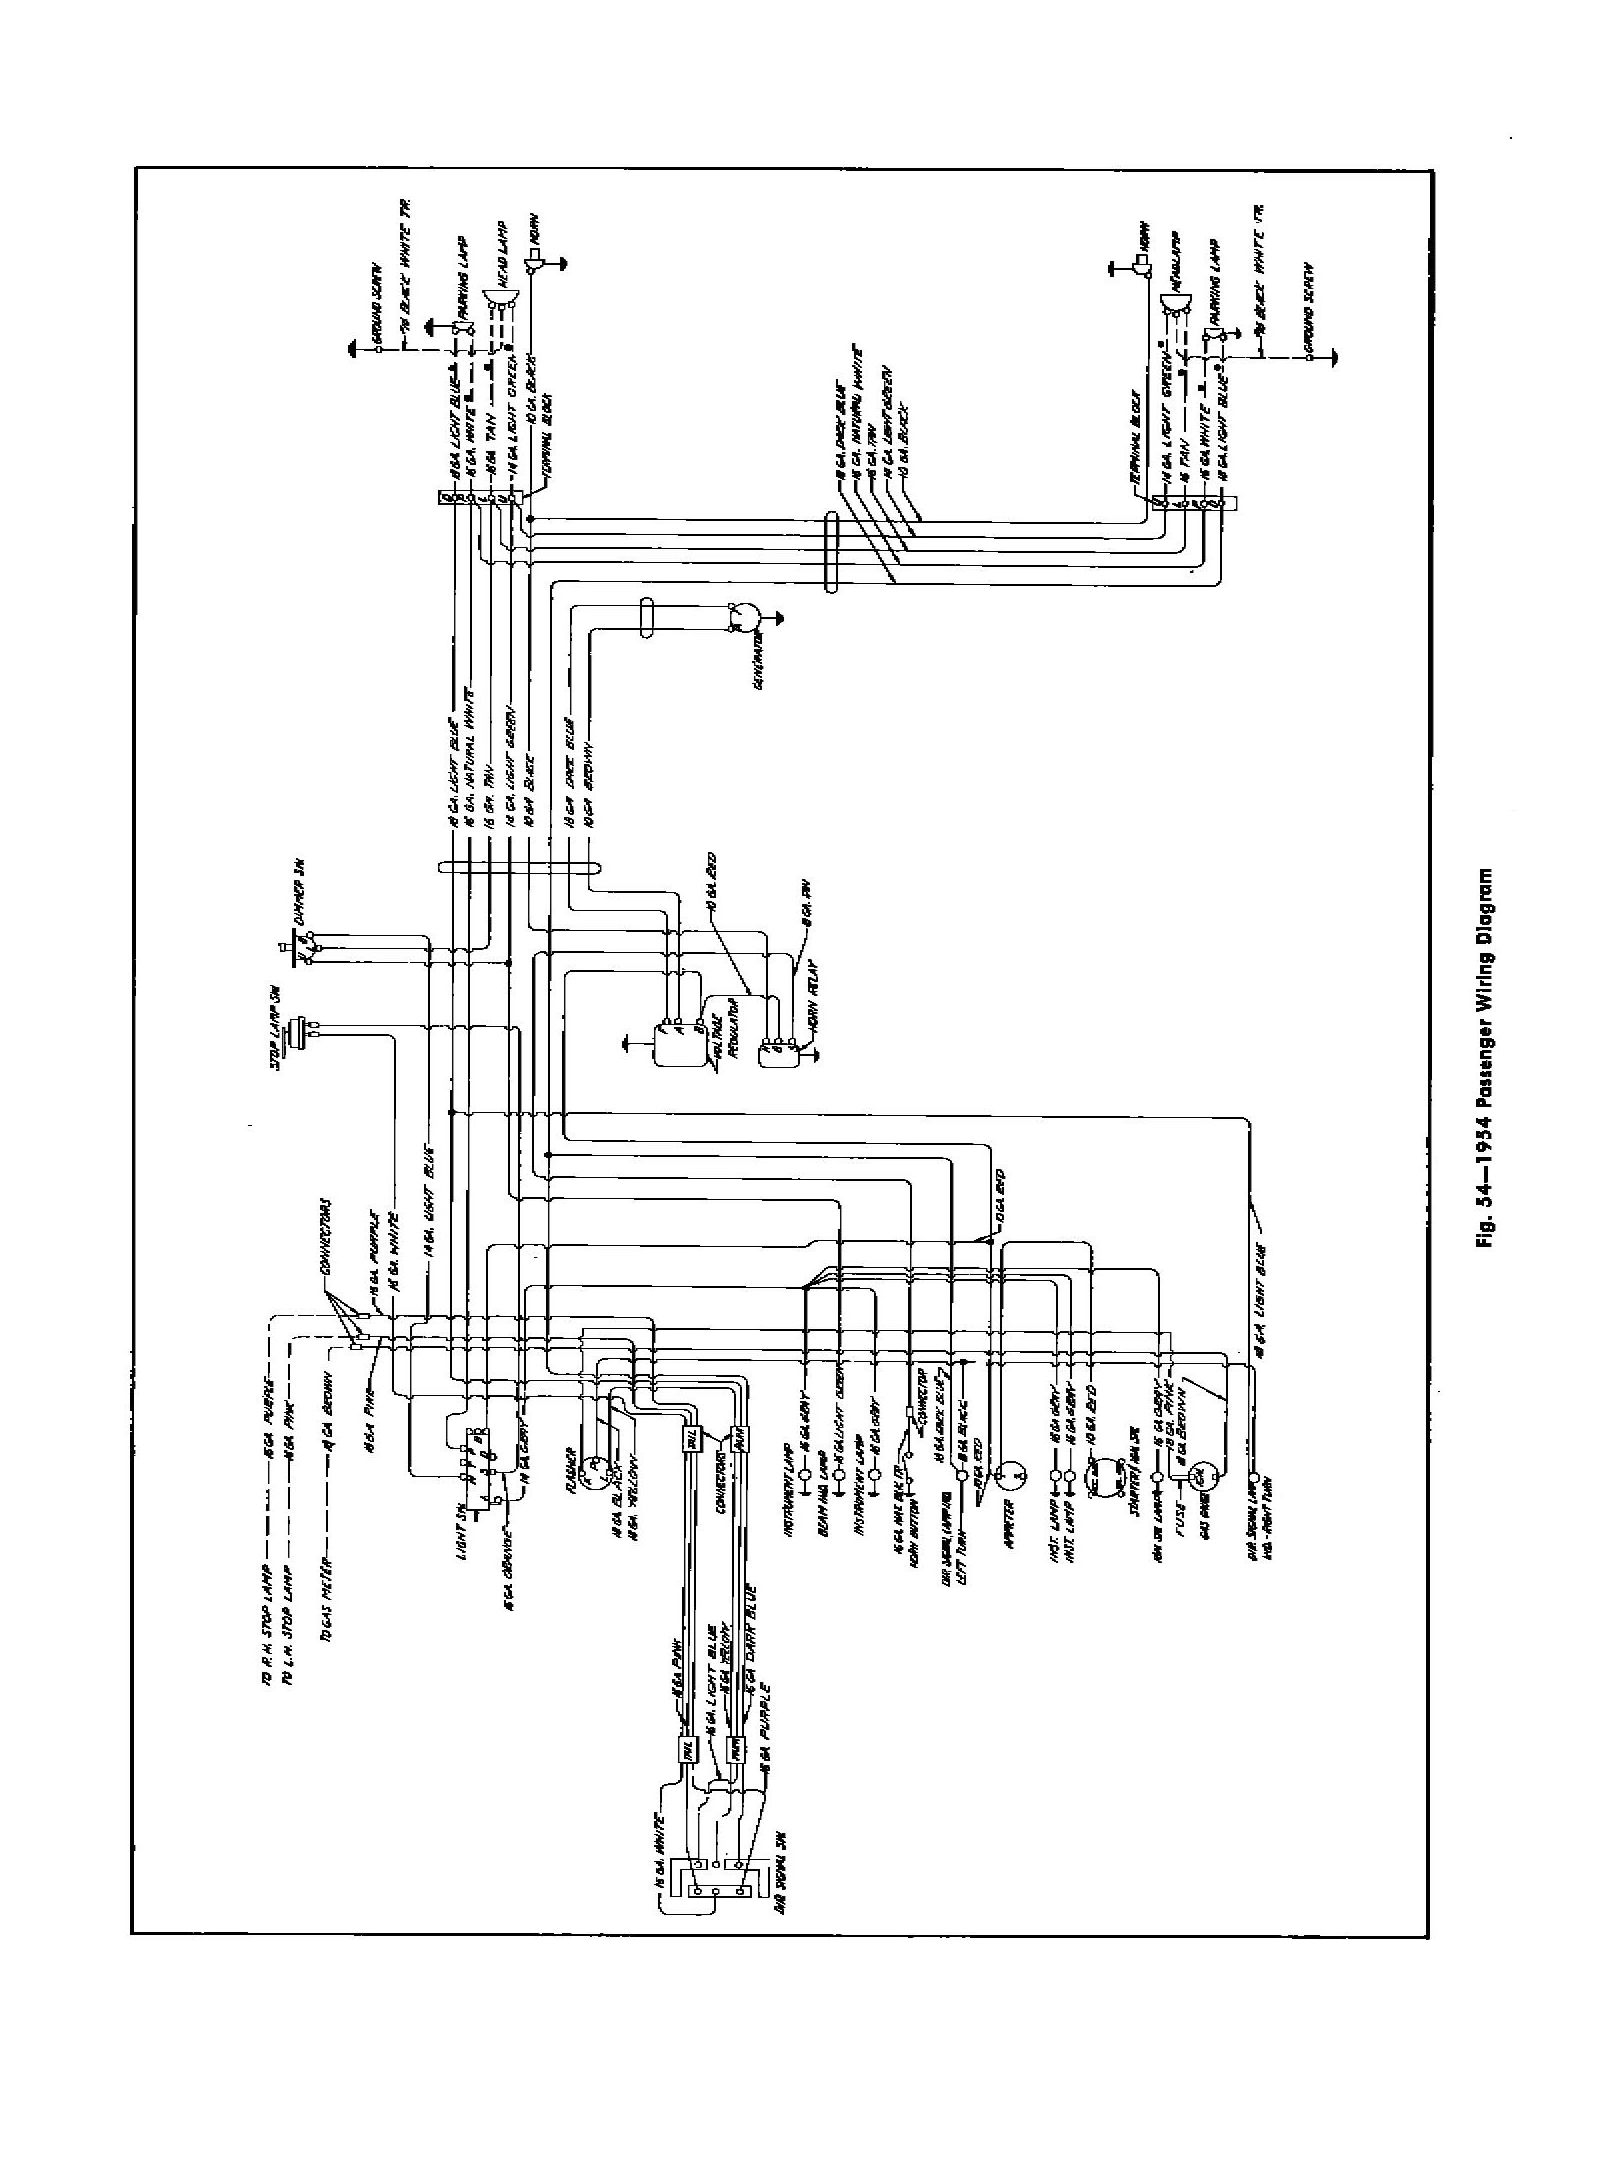 1954 Chevrolet Wiring Diagram For Car on 1979 corvette wiper wiring diagram